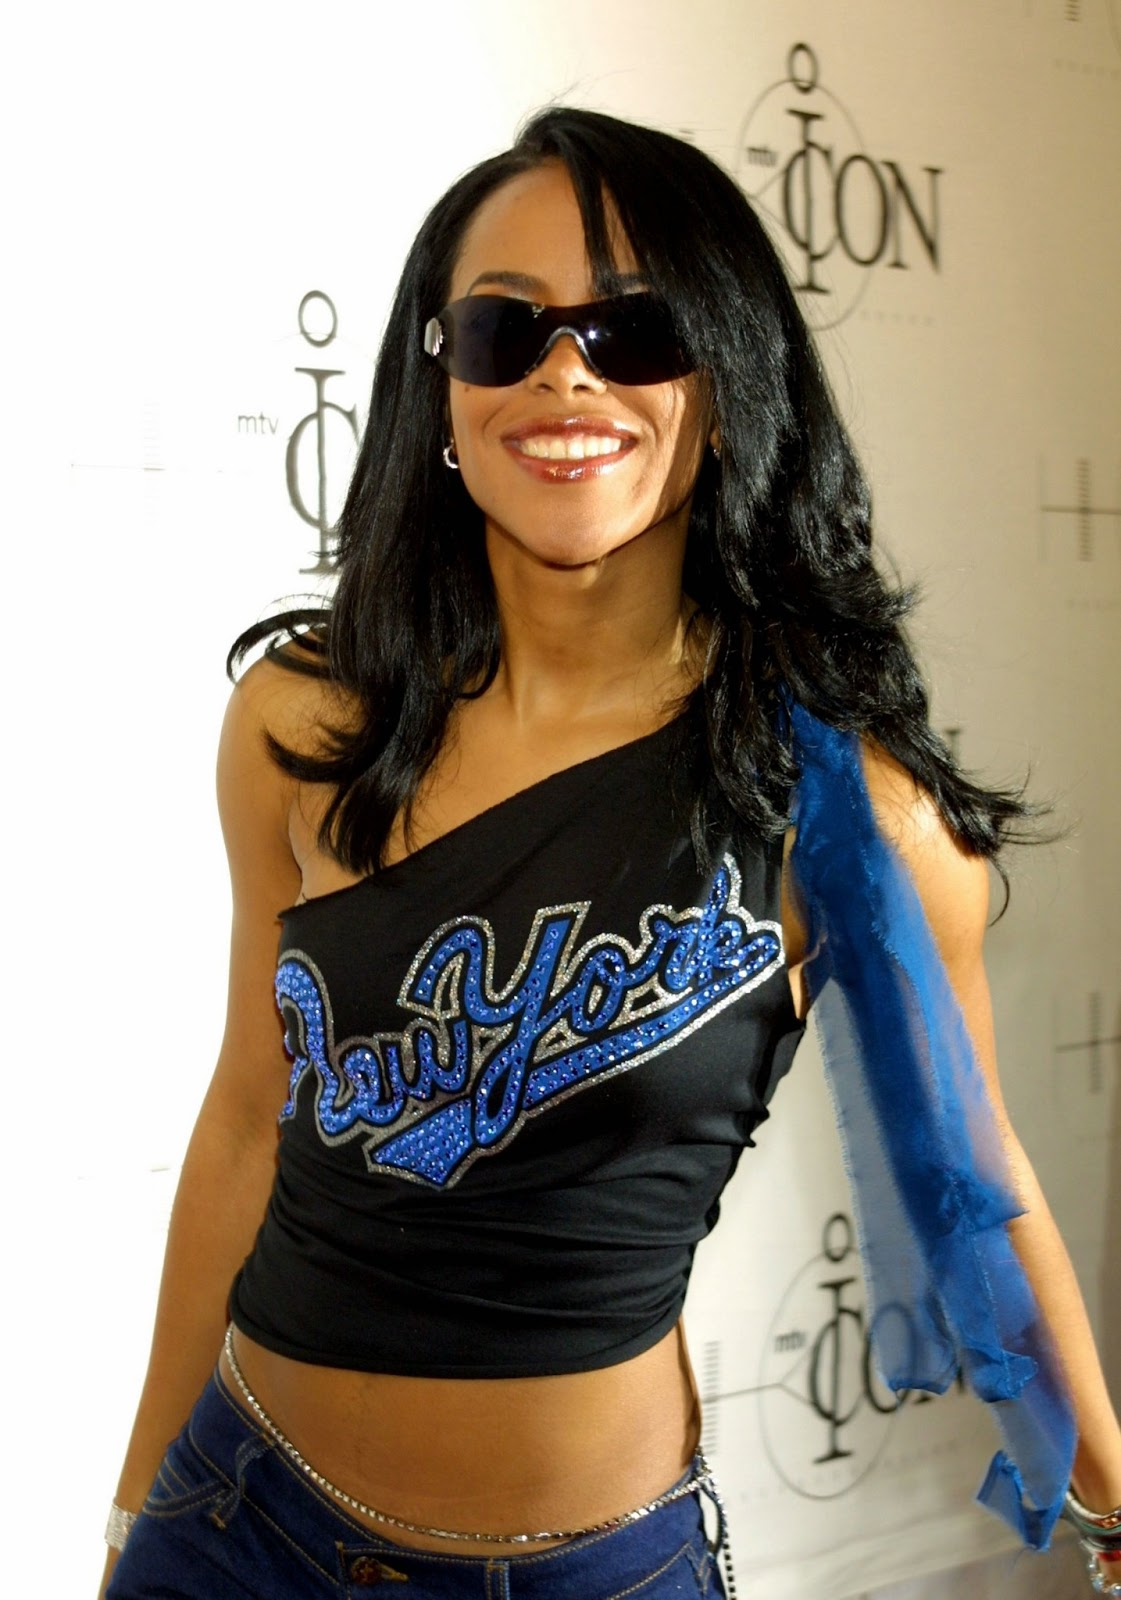 Crash Beautiful aaliyah dana american fashion model and music artist